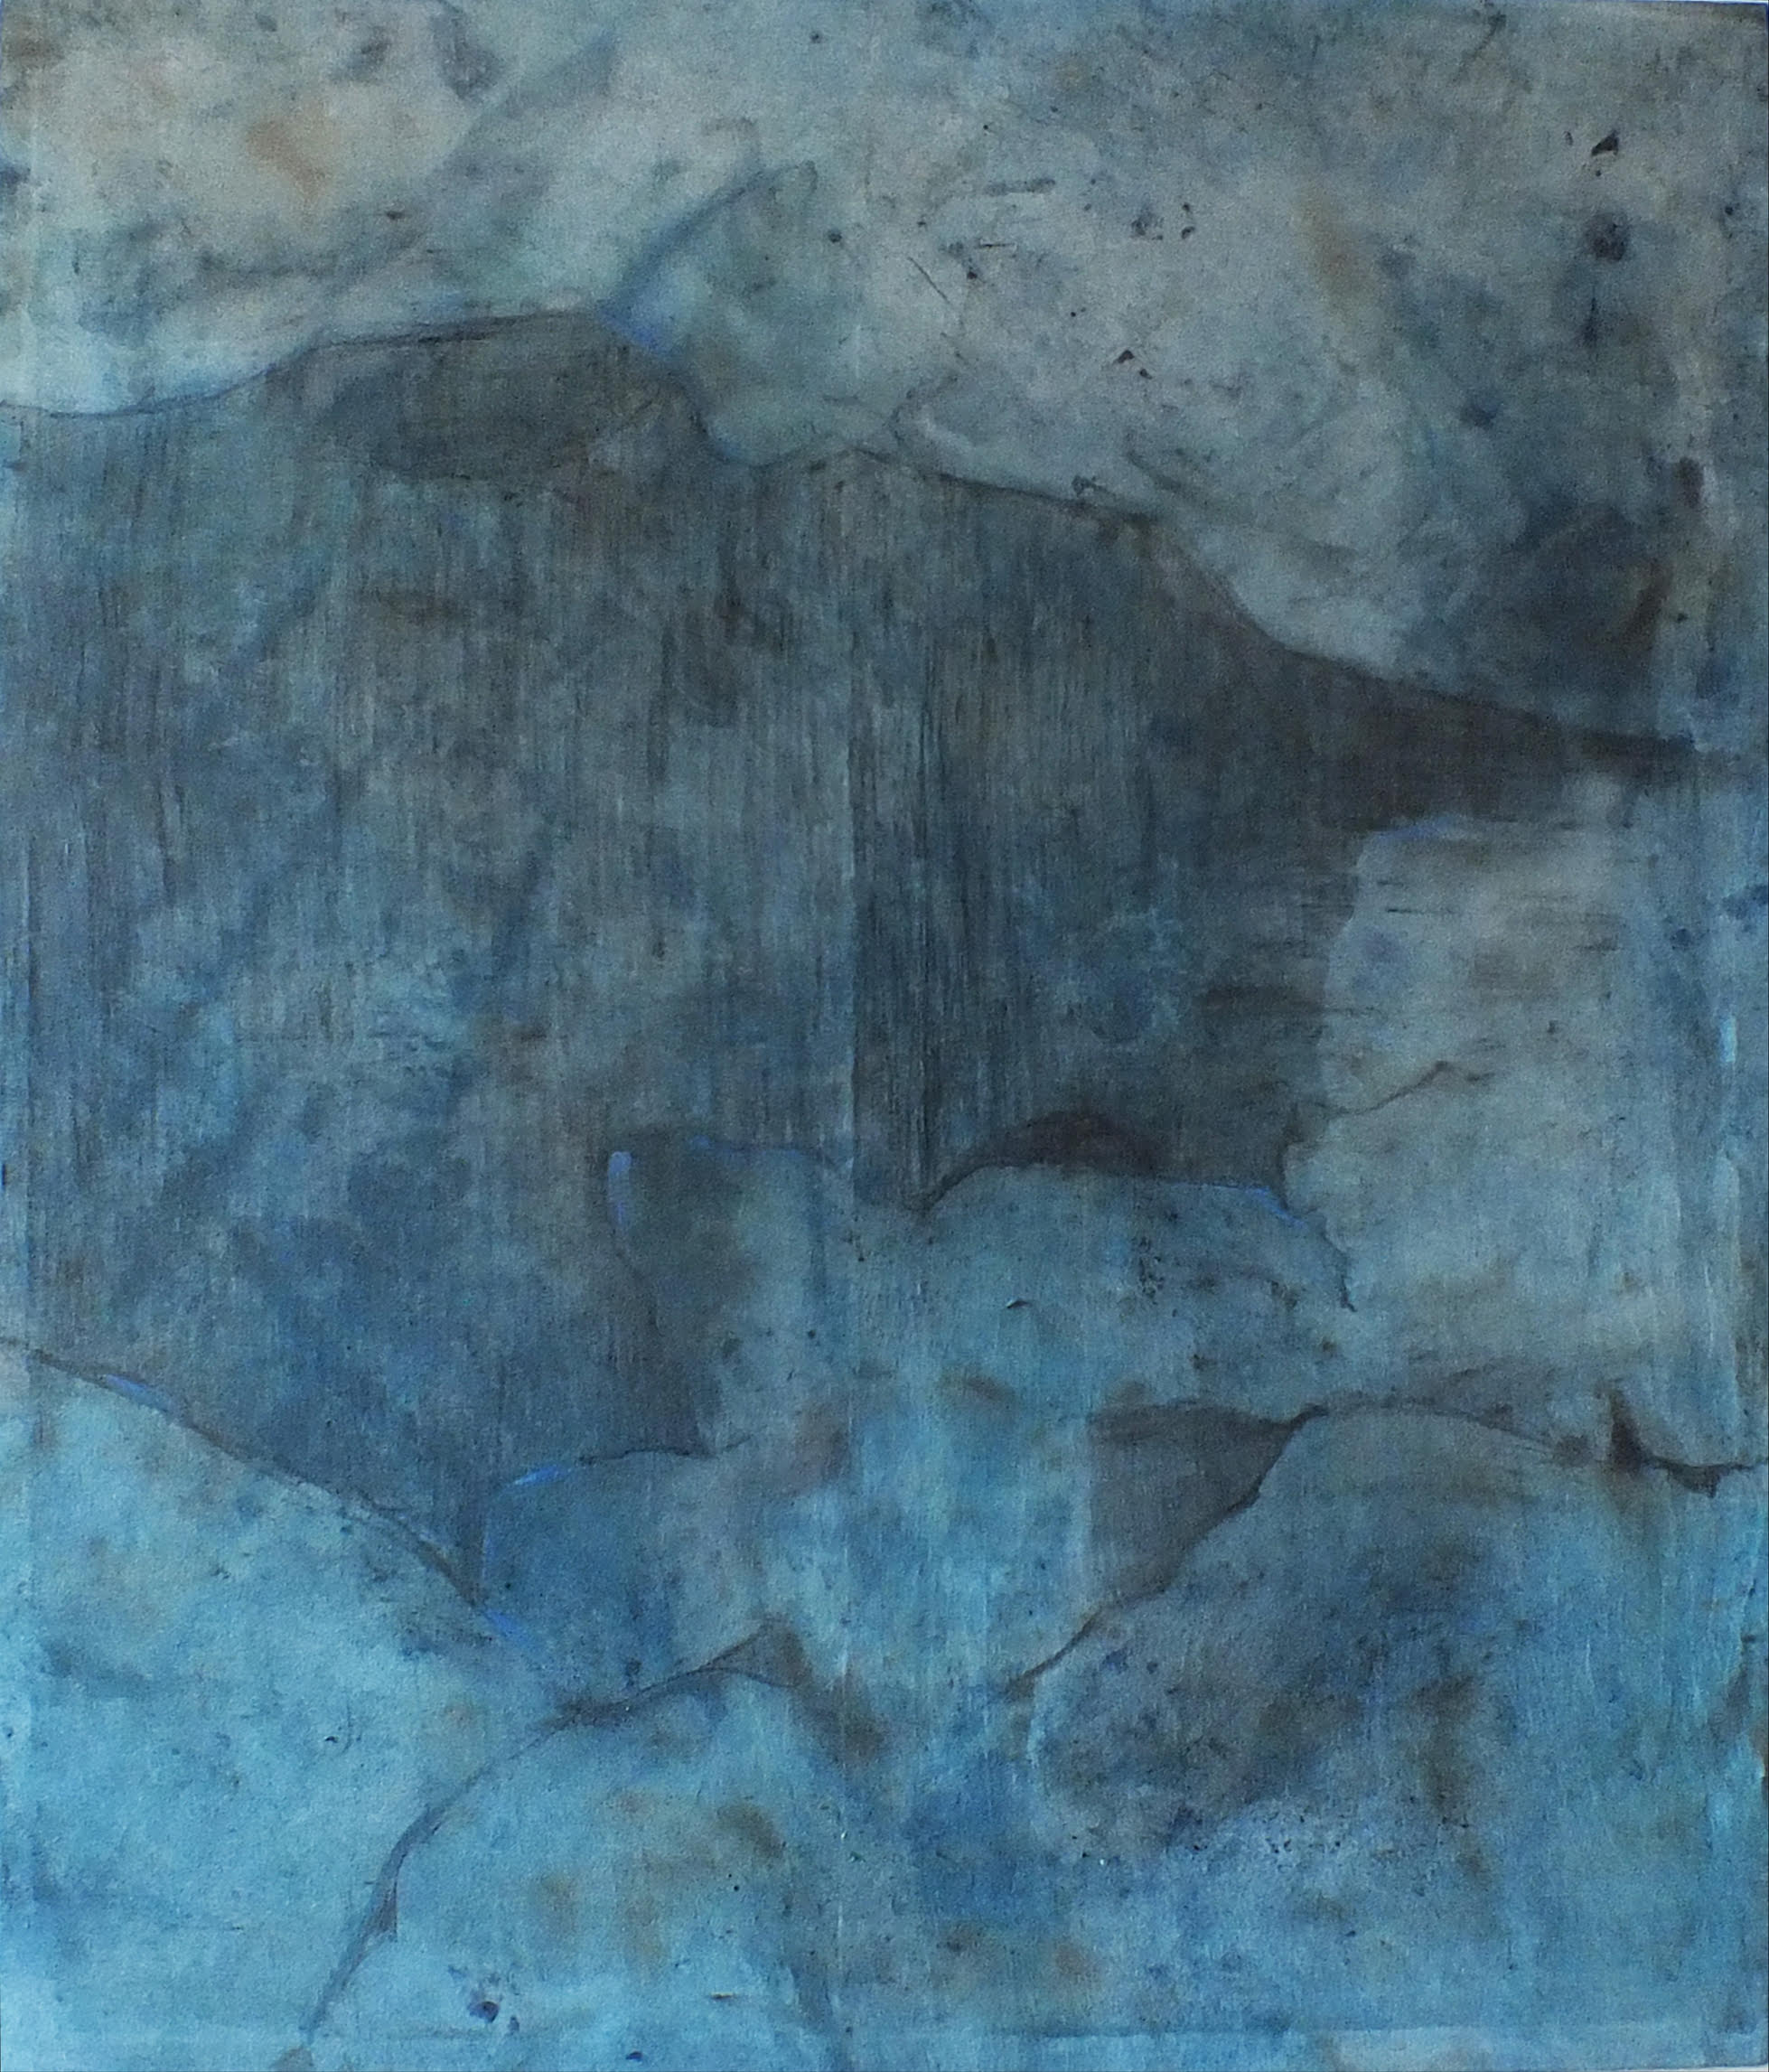 Landscape 70, Contemporary Minimalist Abstract Oil Painting Blue Canvas Graphite